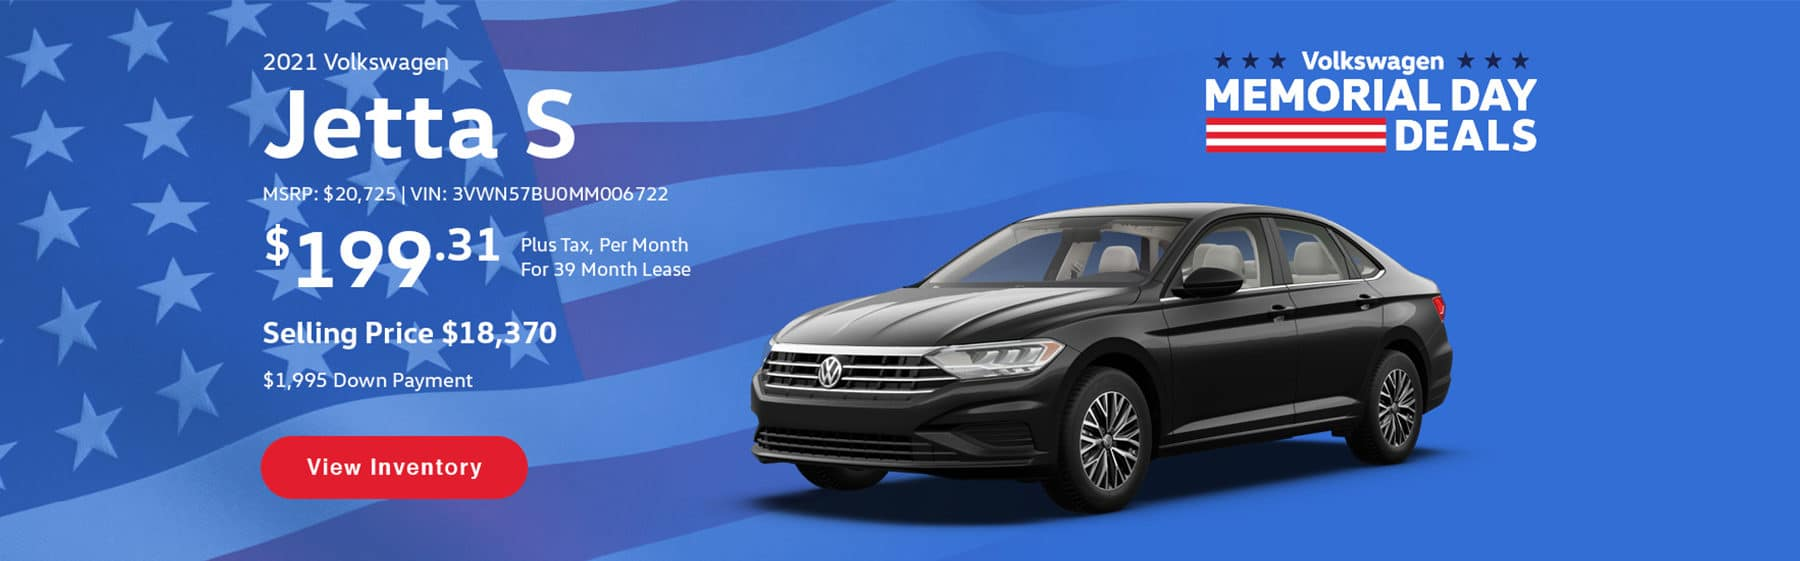 Lease the 2021 Volkswagen Jetta S for $199.31 per month, plus tax, for 39 months. Selling price is $18,370.